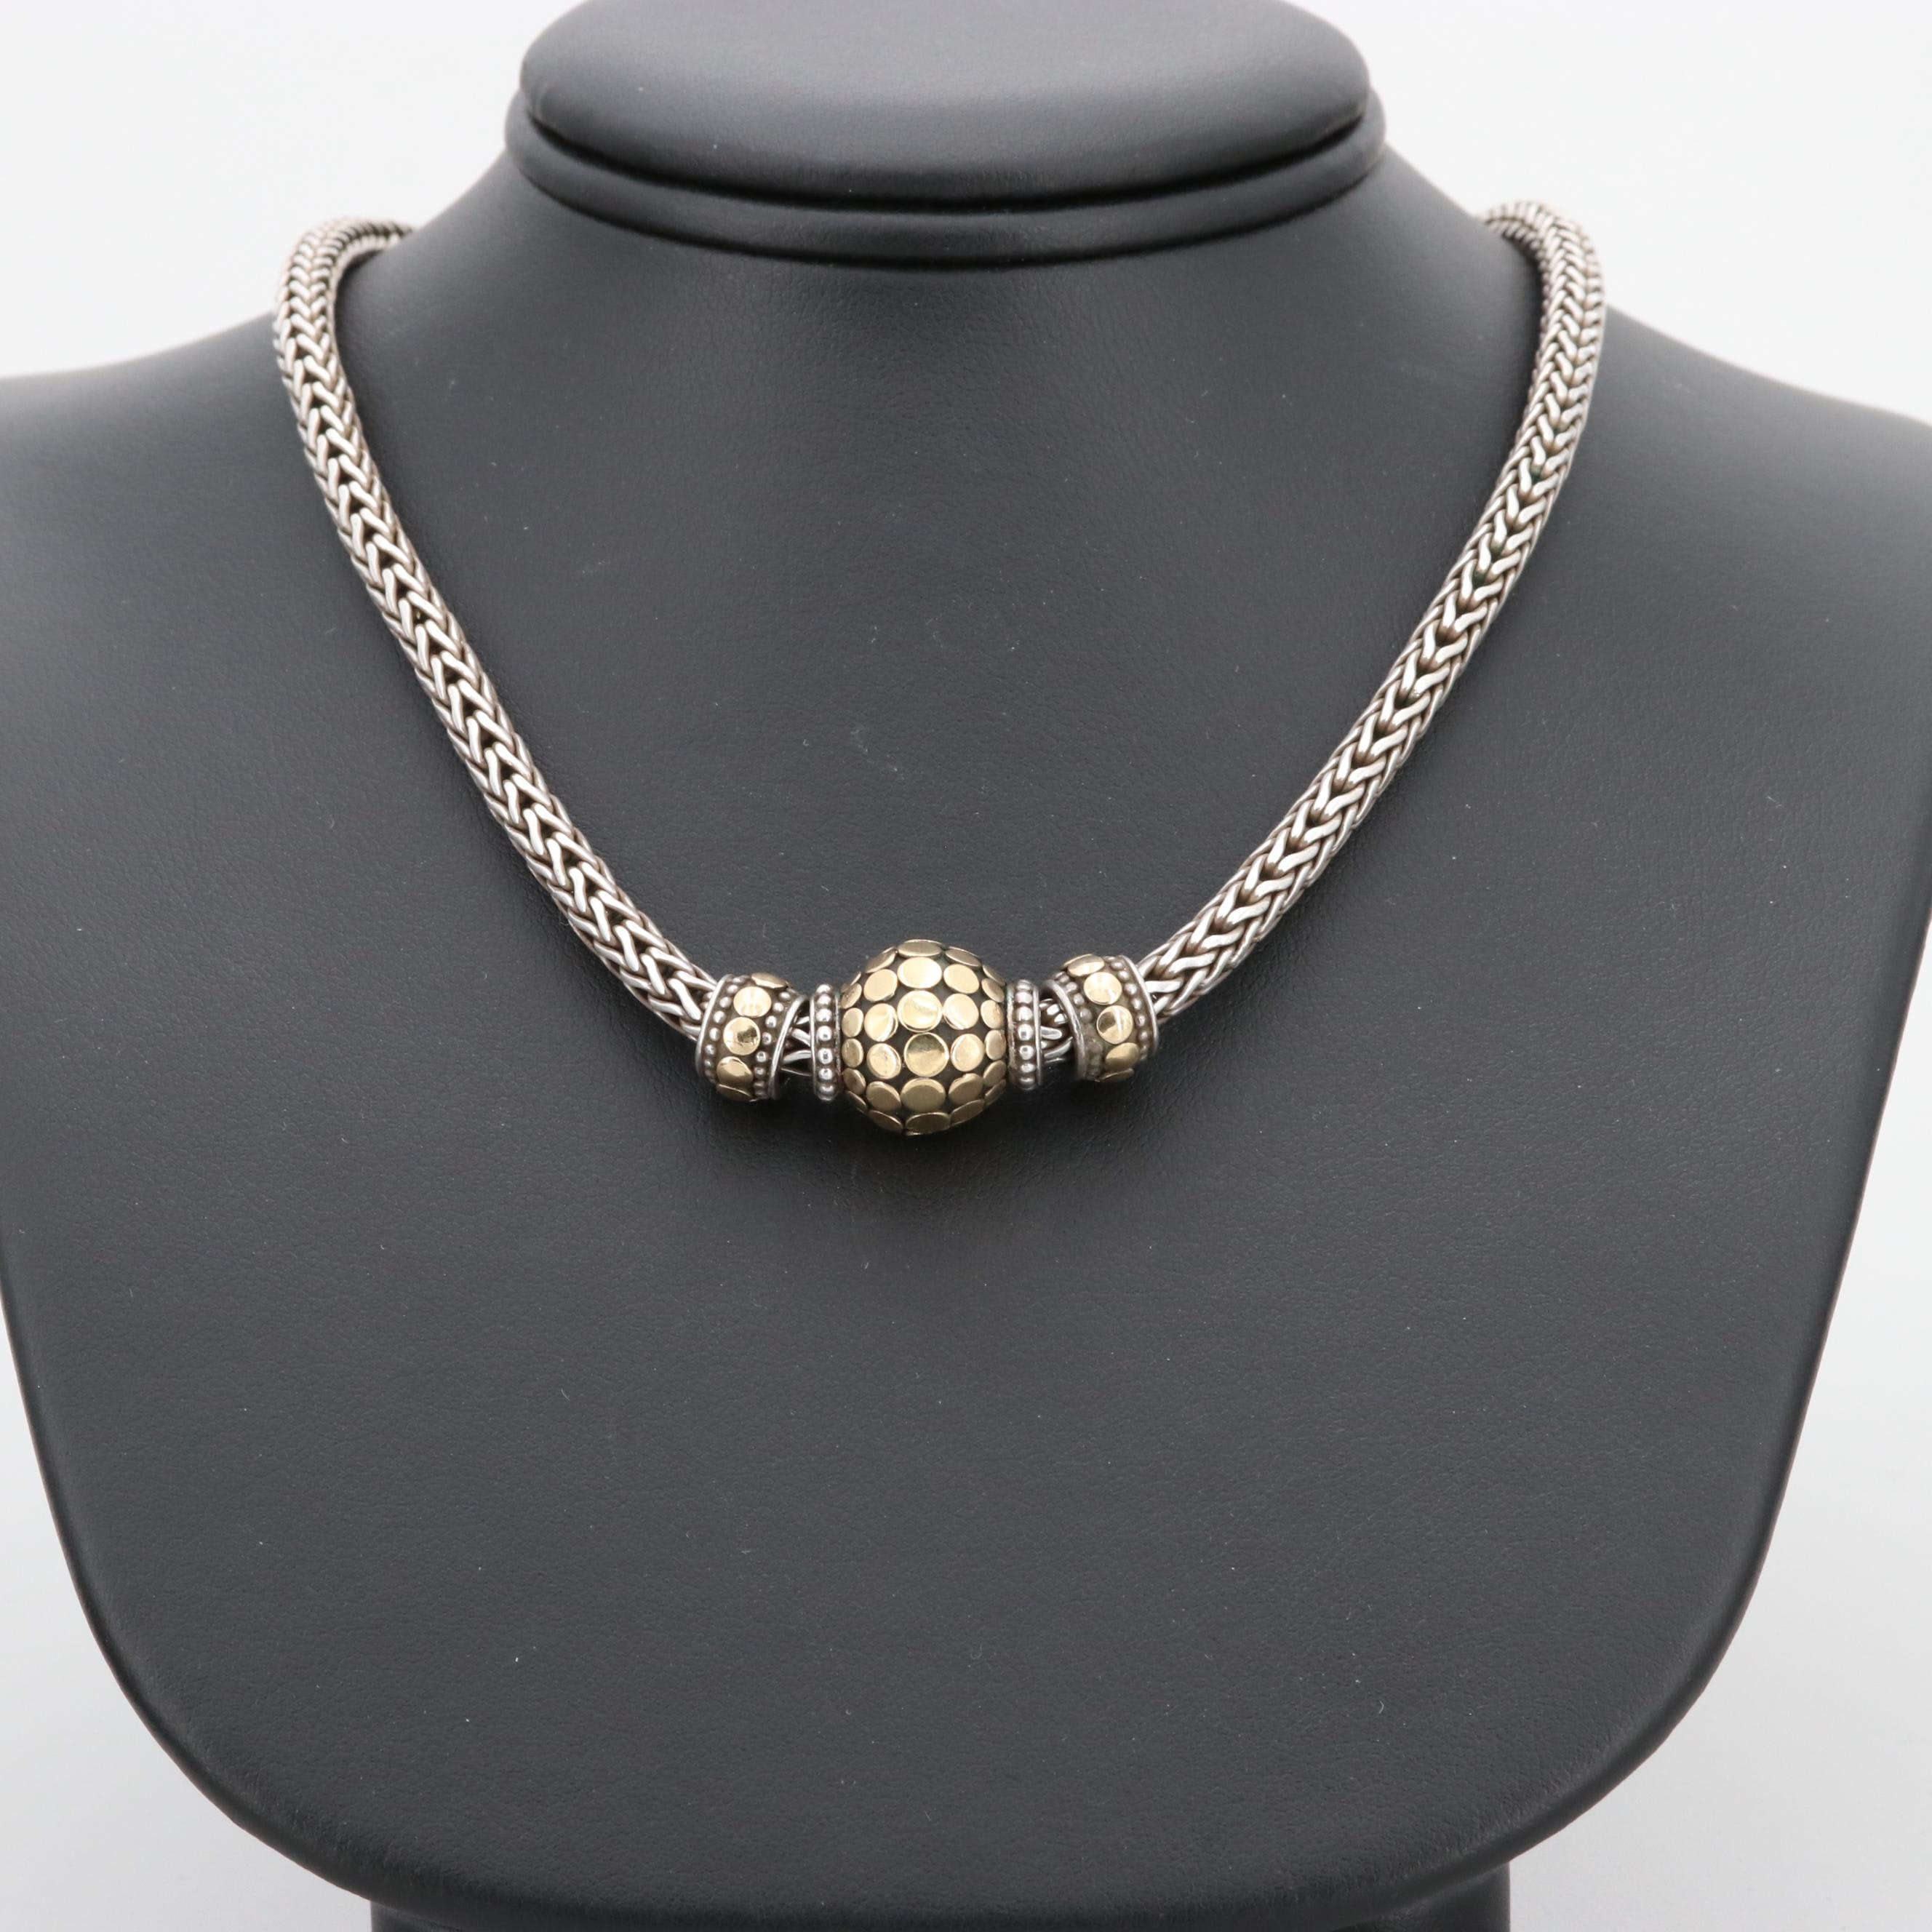 John Hardy Sterling Silver Necklace with 18K Accents